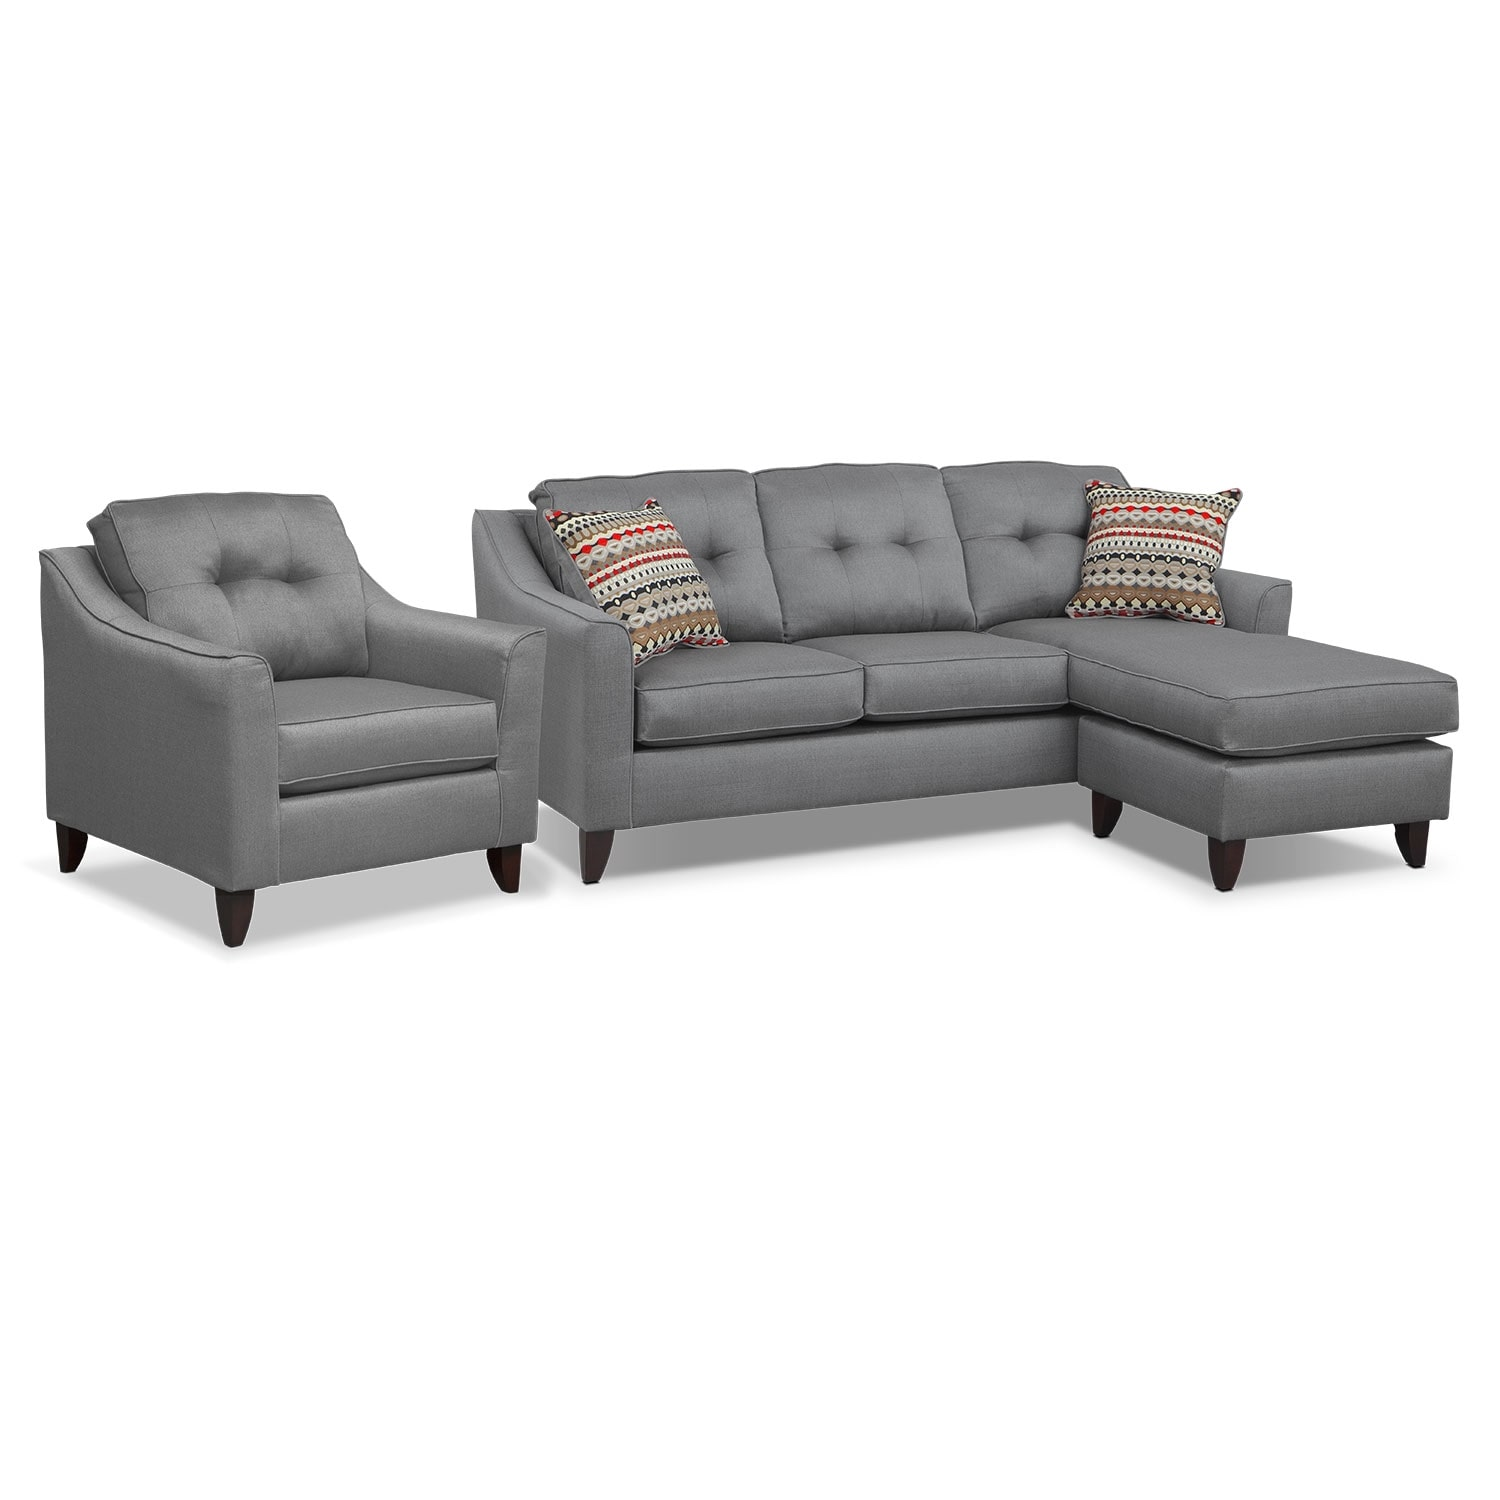 Marco Chaise Sofa And Chair Set   Gray By Factory Outlet. Living Room ... Part 60